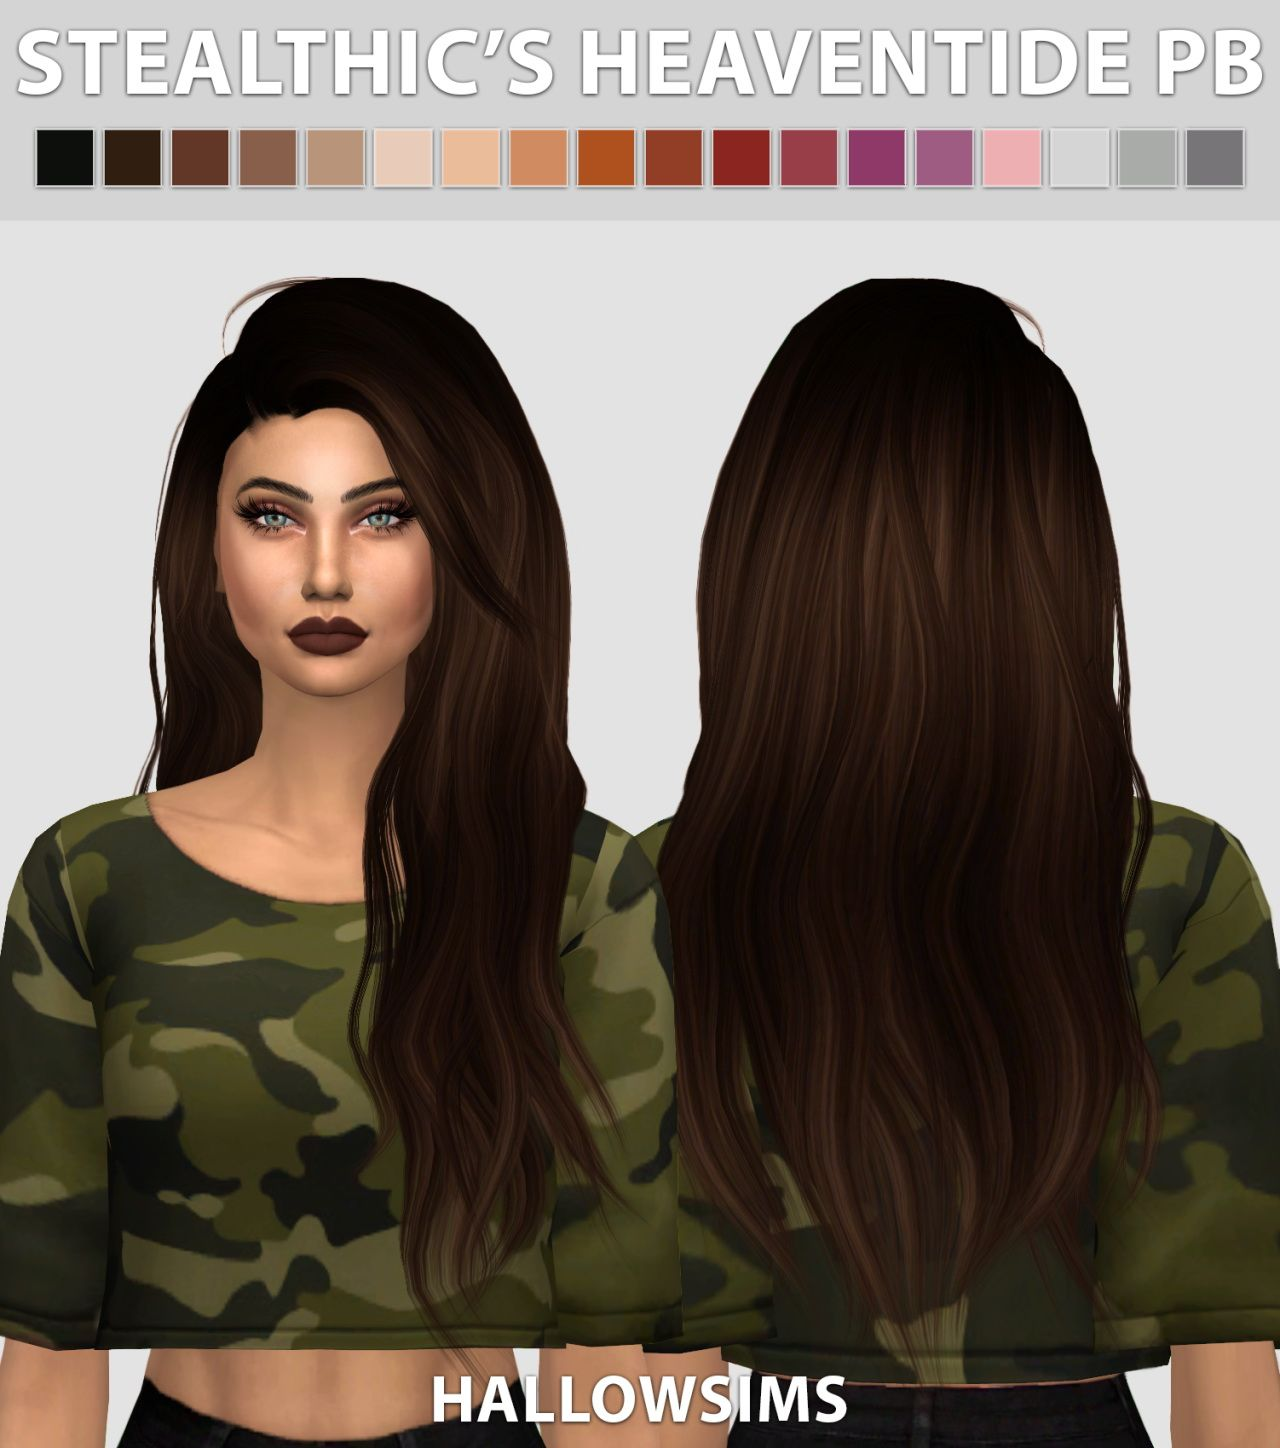 Sims 4 mods traits downloads 187 sims 4 updates 187 page 58 of 100 - 1000 Ideas About Jeux Les Sims On Pinterest Jeux Des Sims Jeux De Sims 4 And Telecharger Les Sims